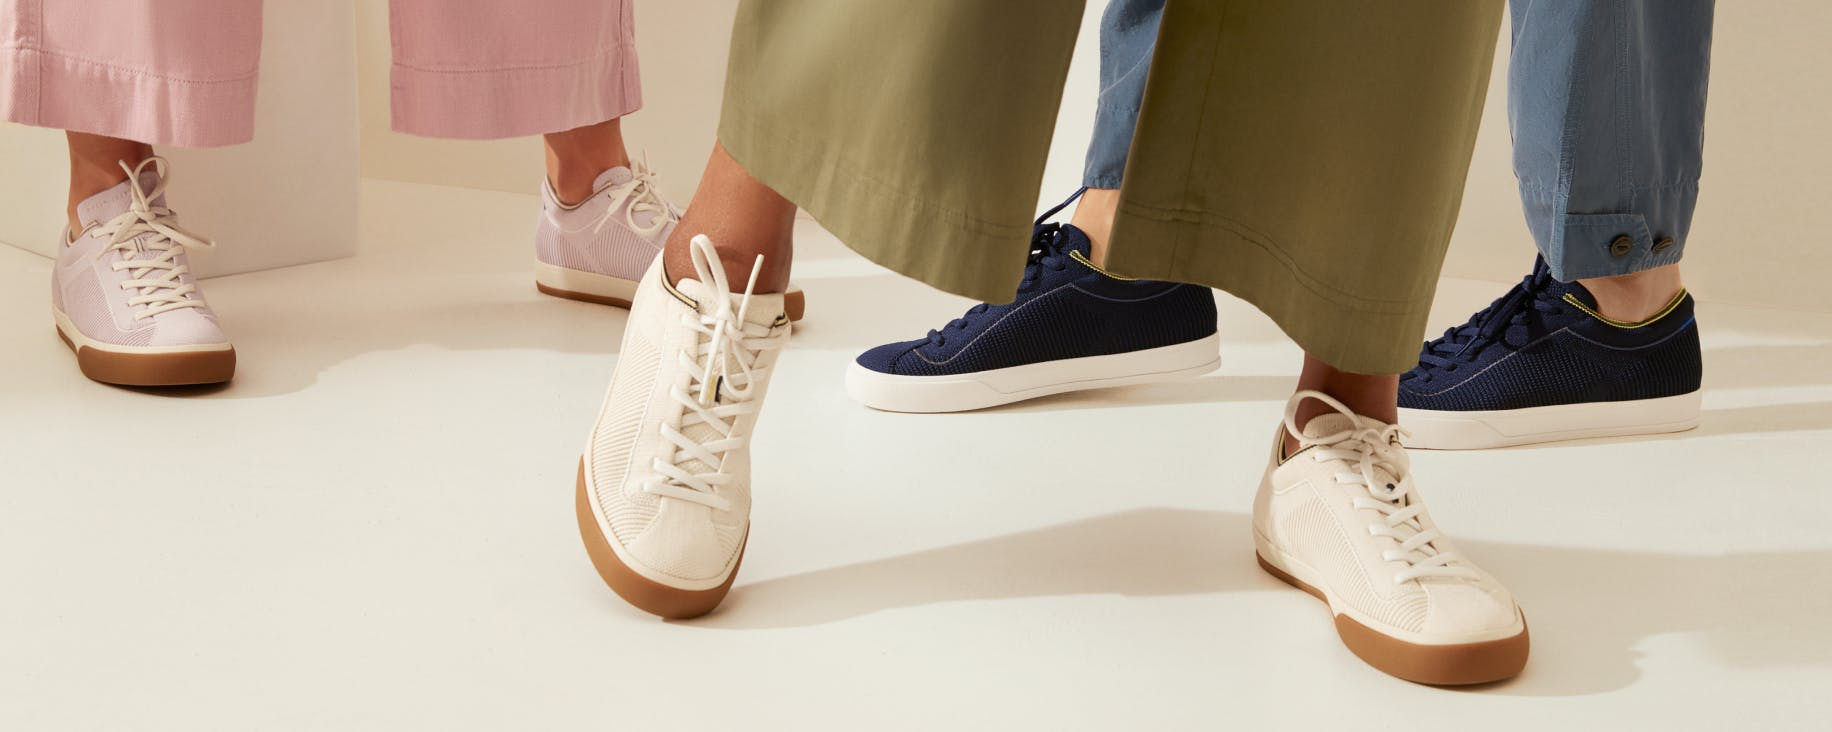 The Lace Up in Lilac, The Lace Up in Vanilla and The Lace Up in Navy shown on the feet of three models.